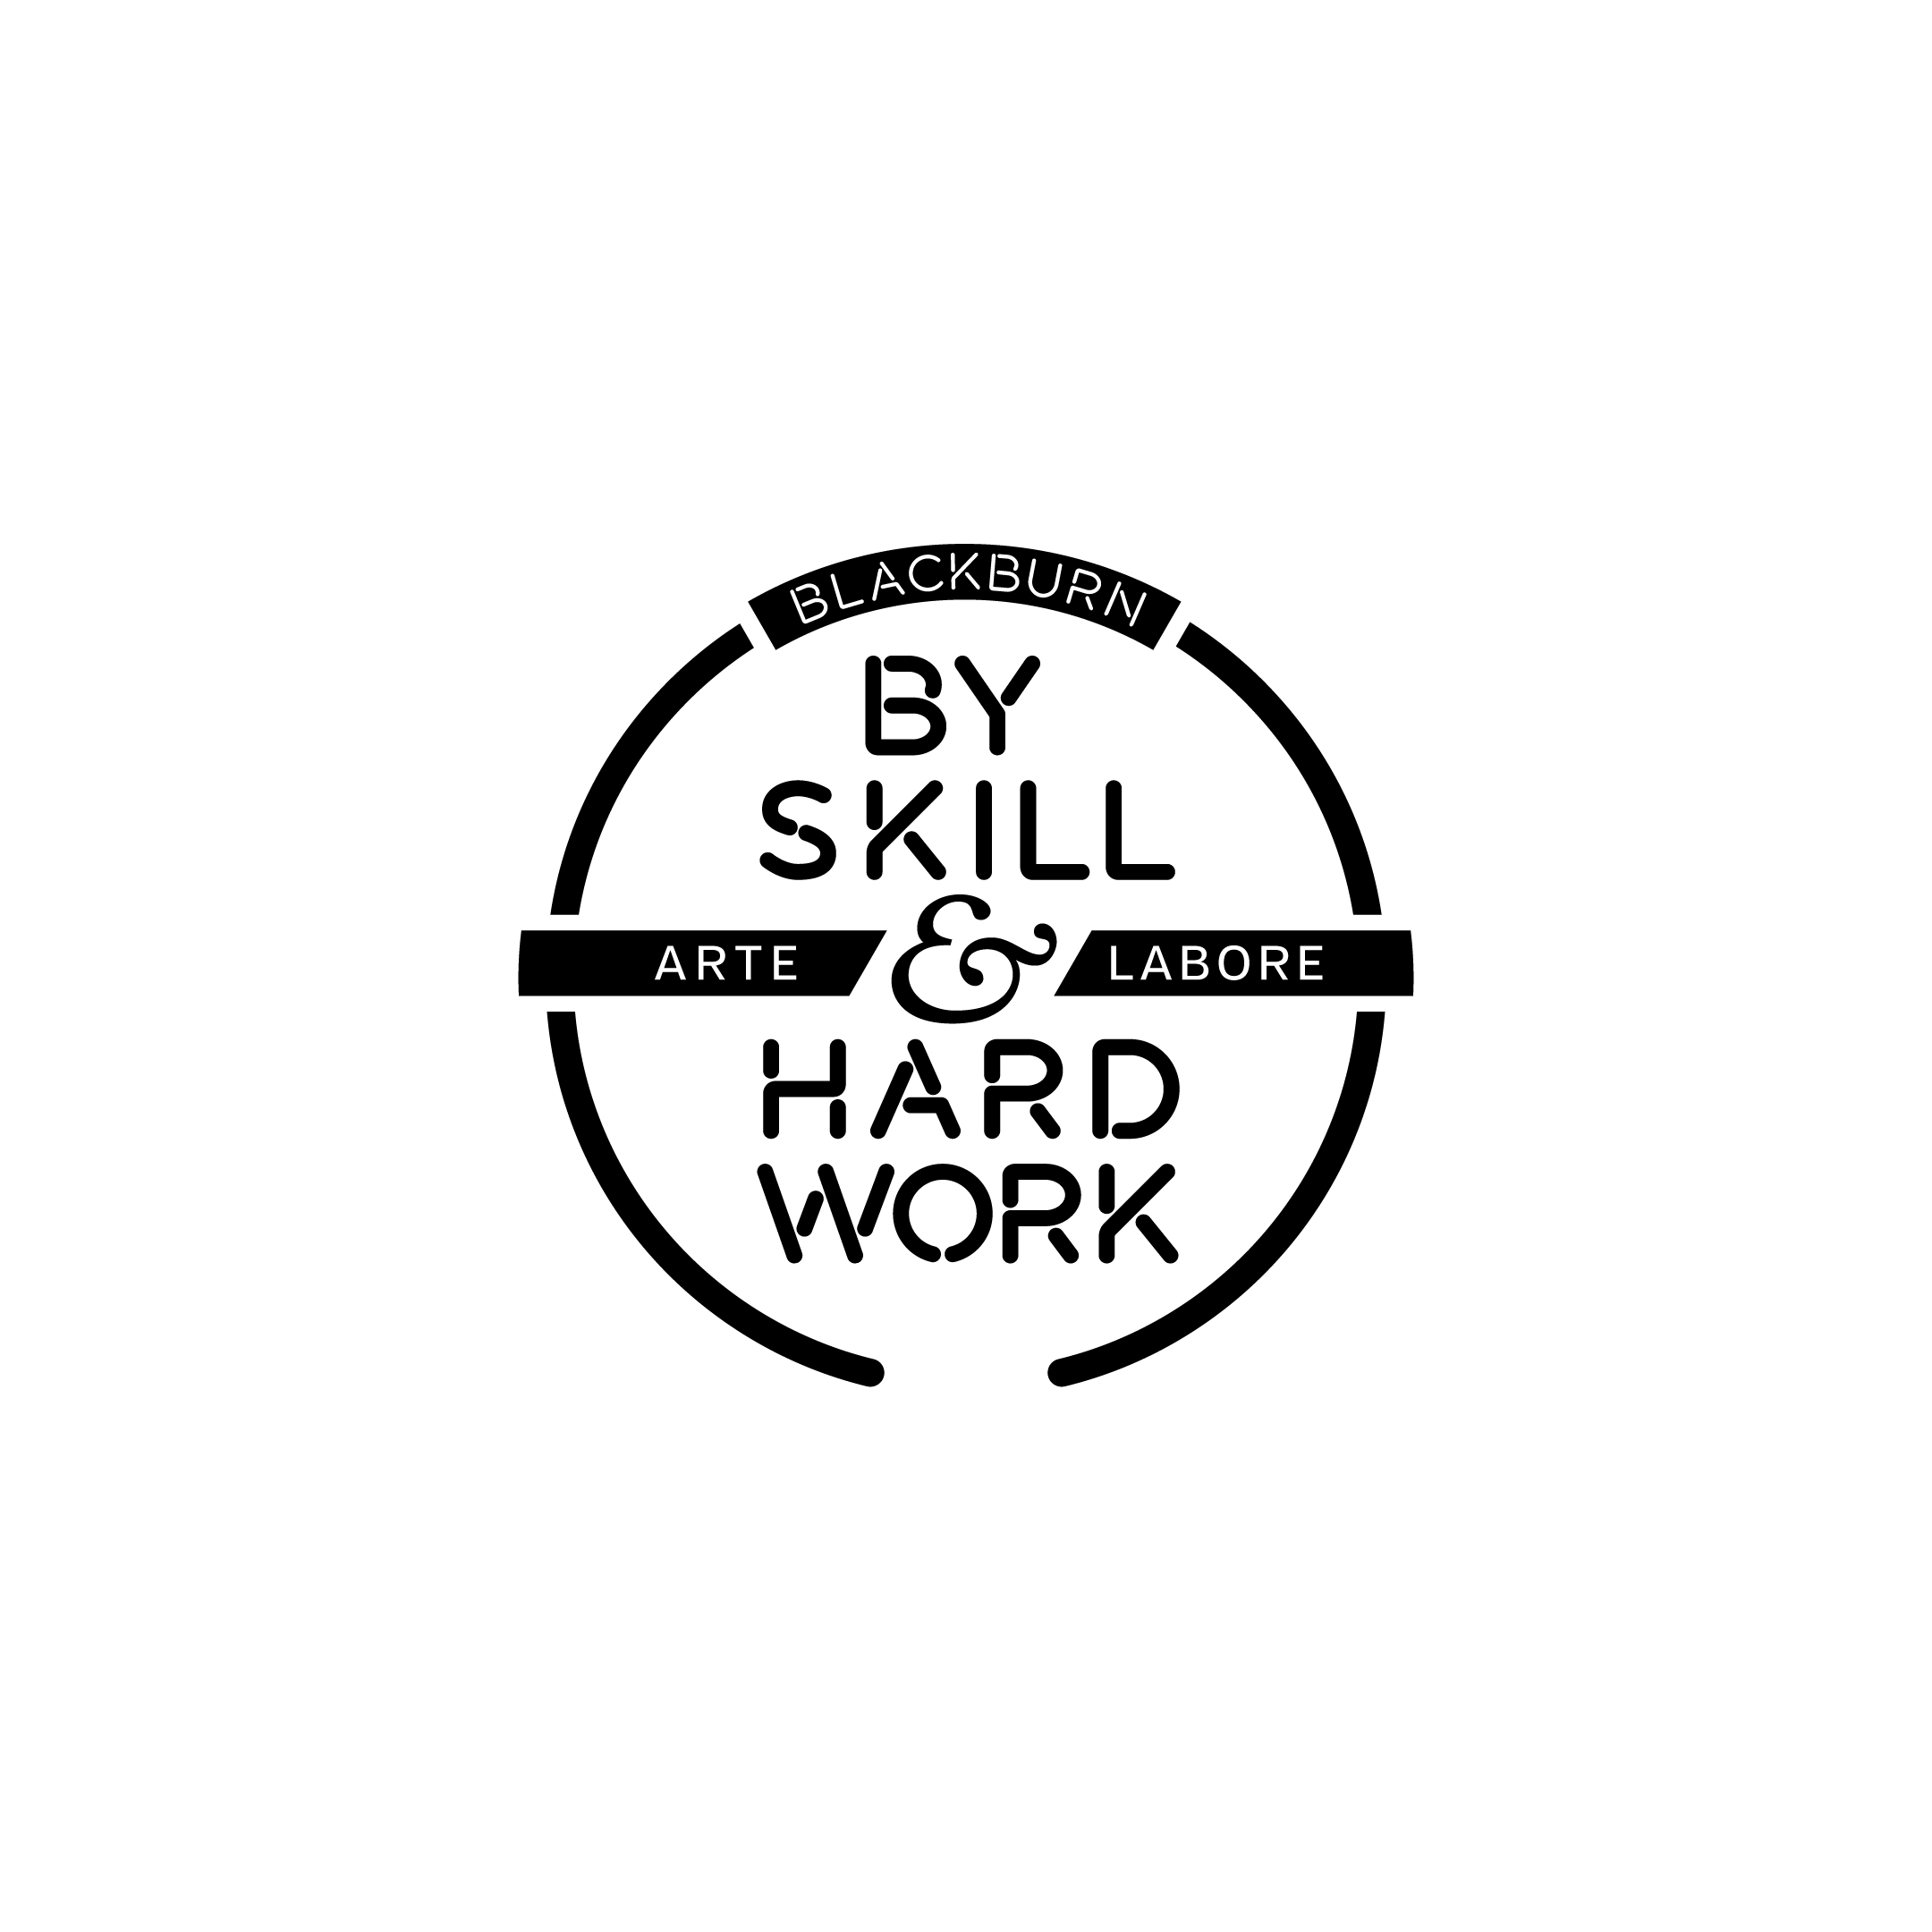 Logo_By-Skill-Hard-Work